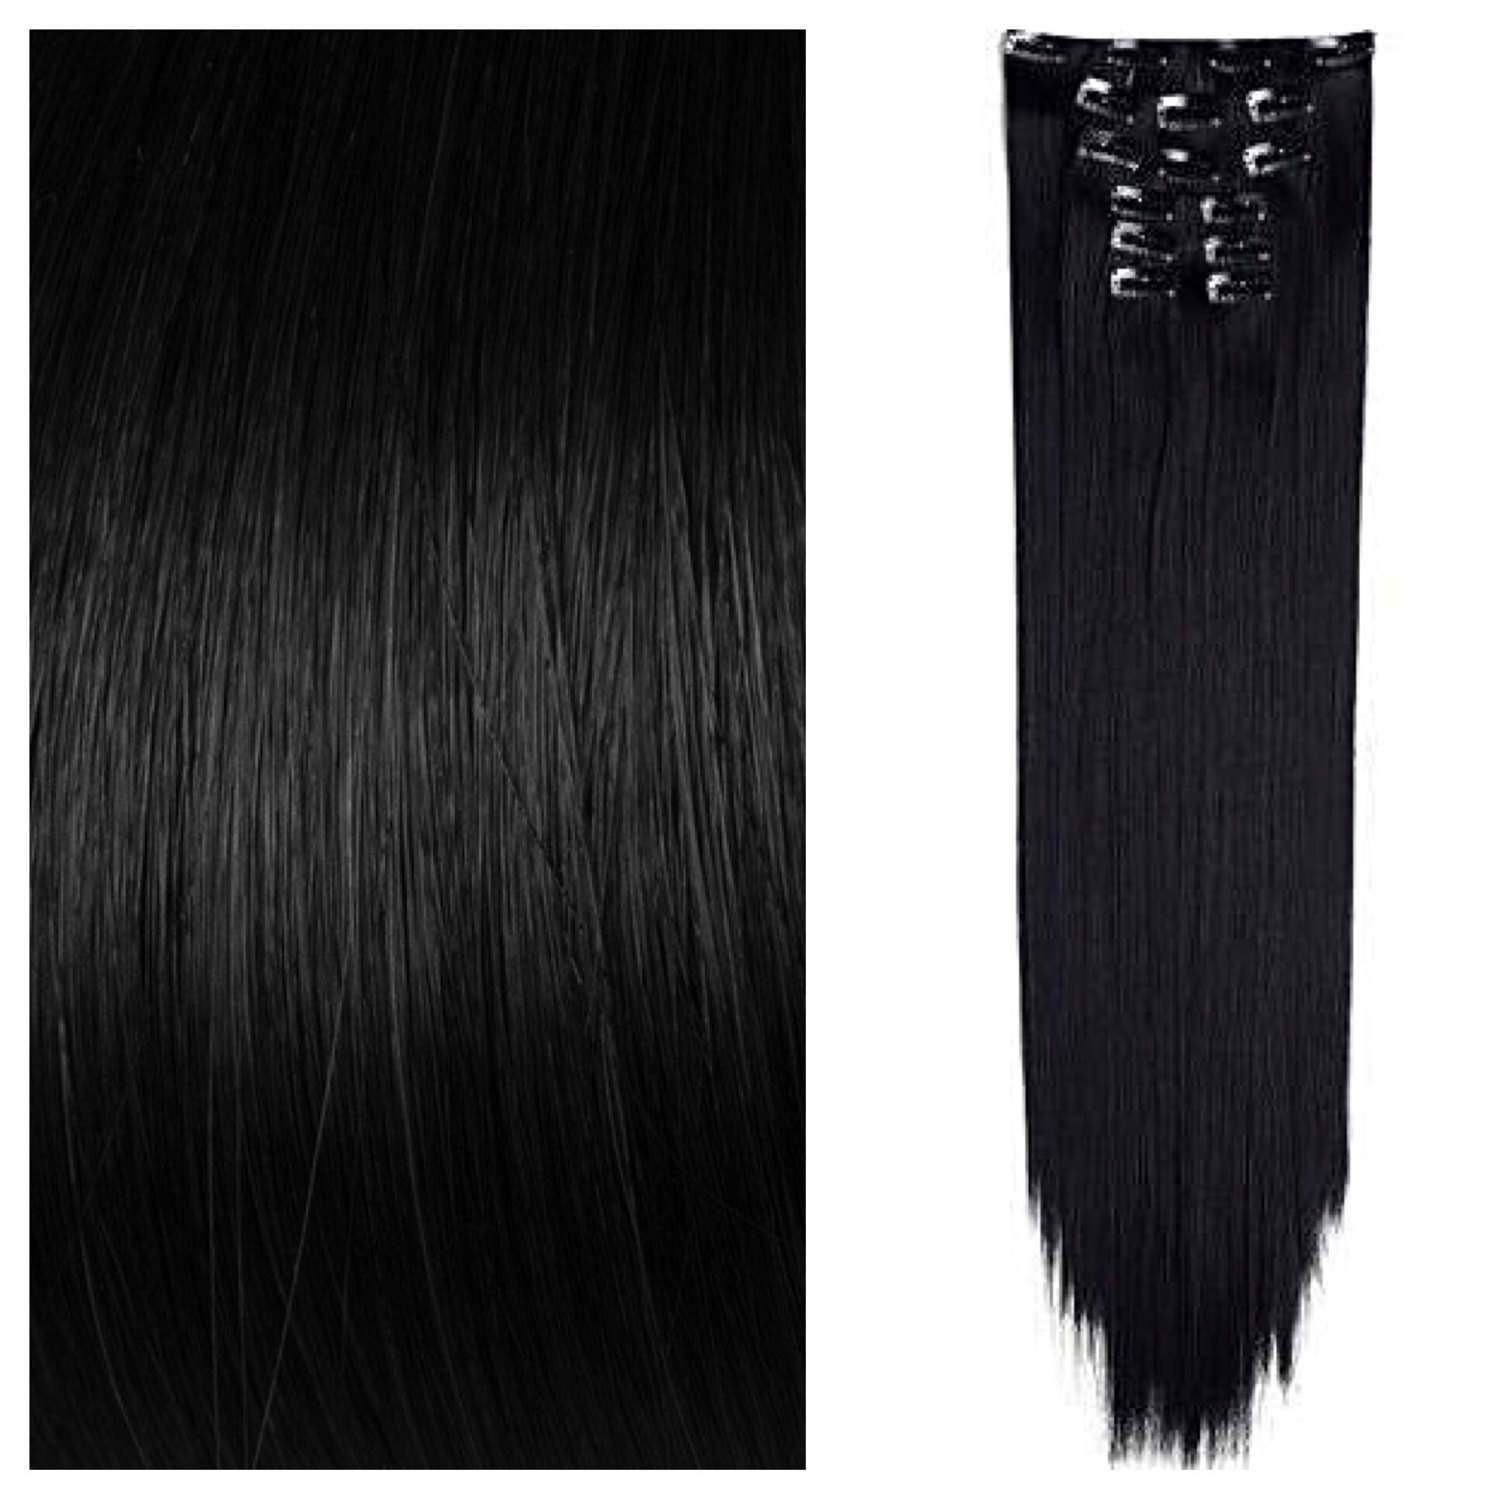 Jet Black Clip In Hair Extensions Straight Human Hair Ready To Ship